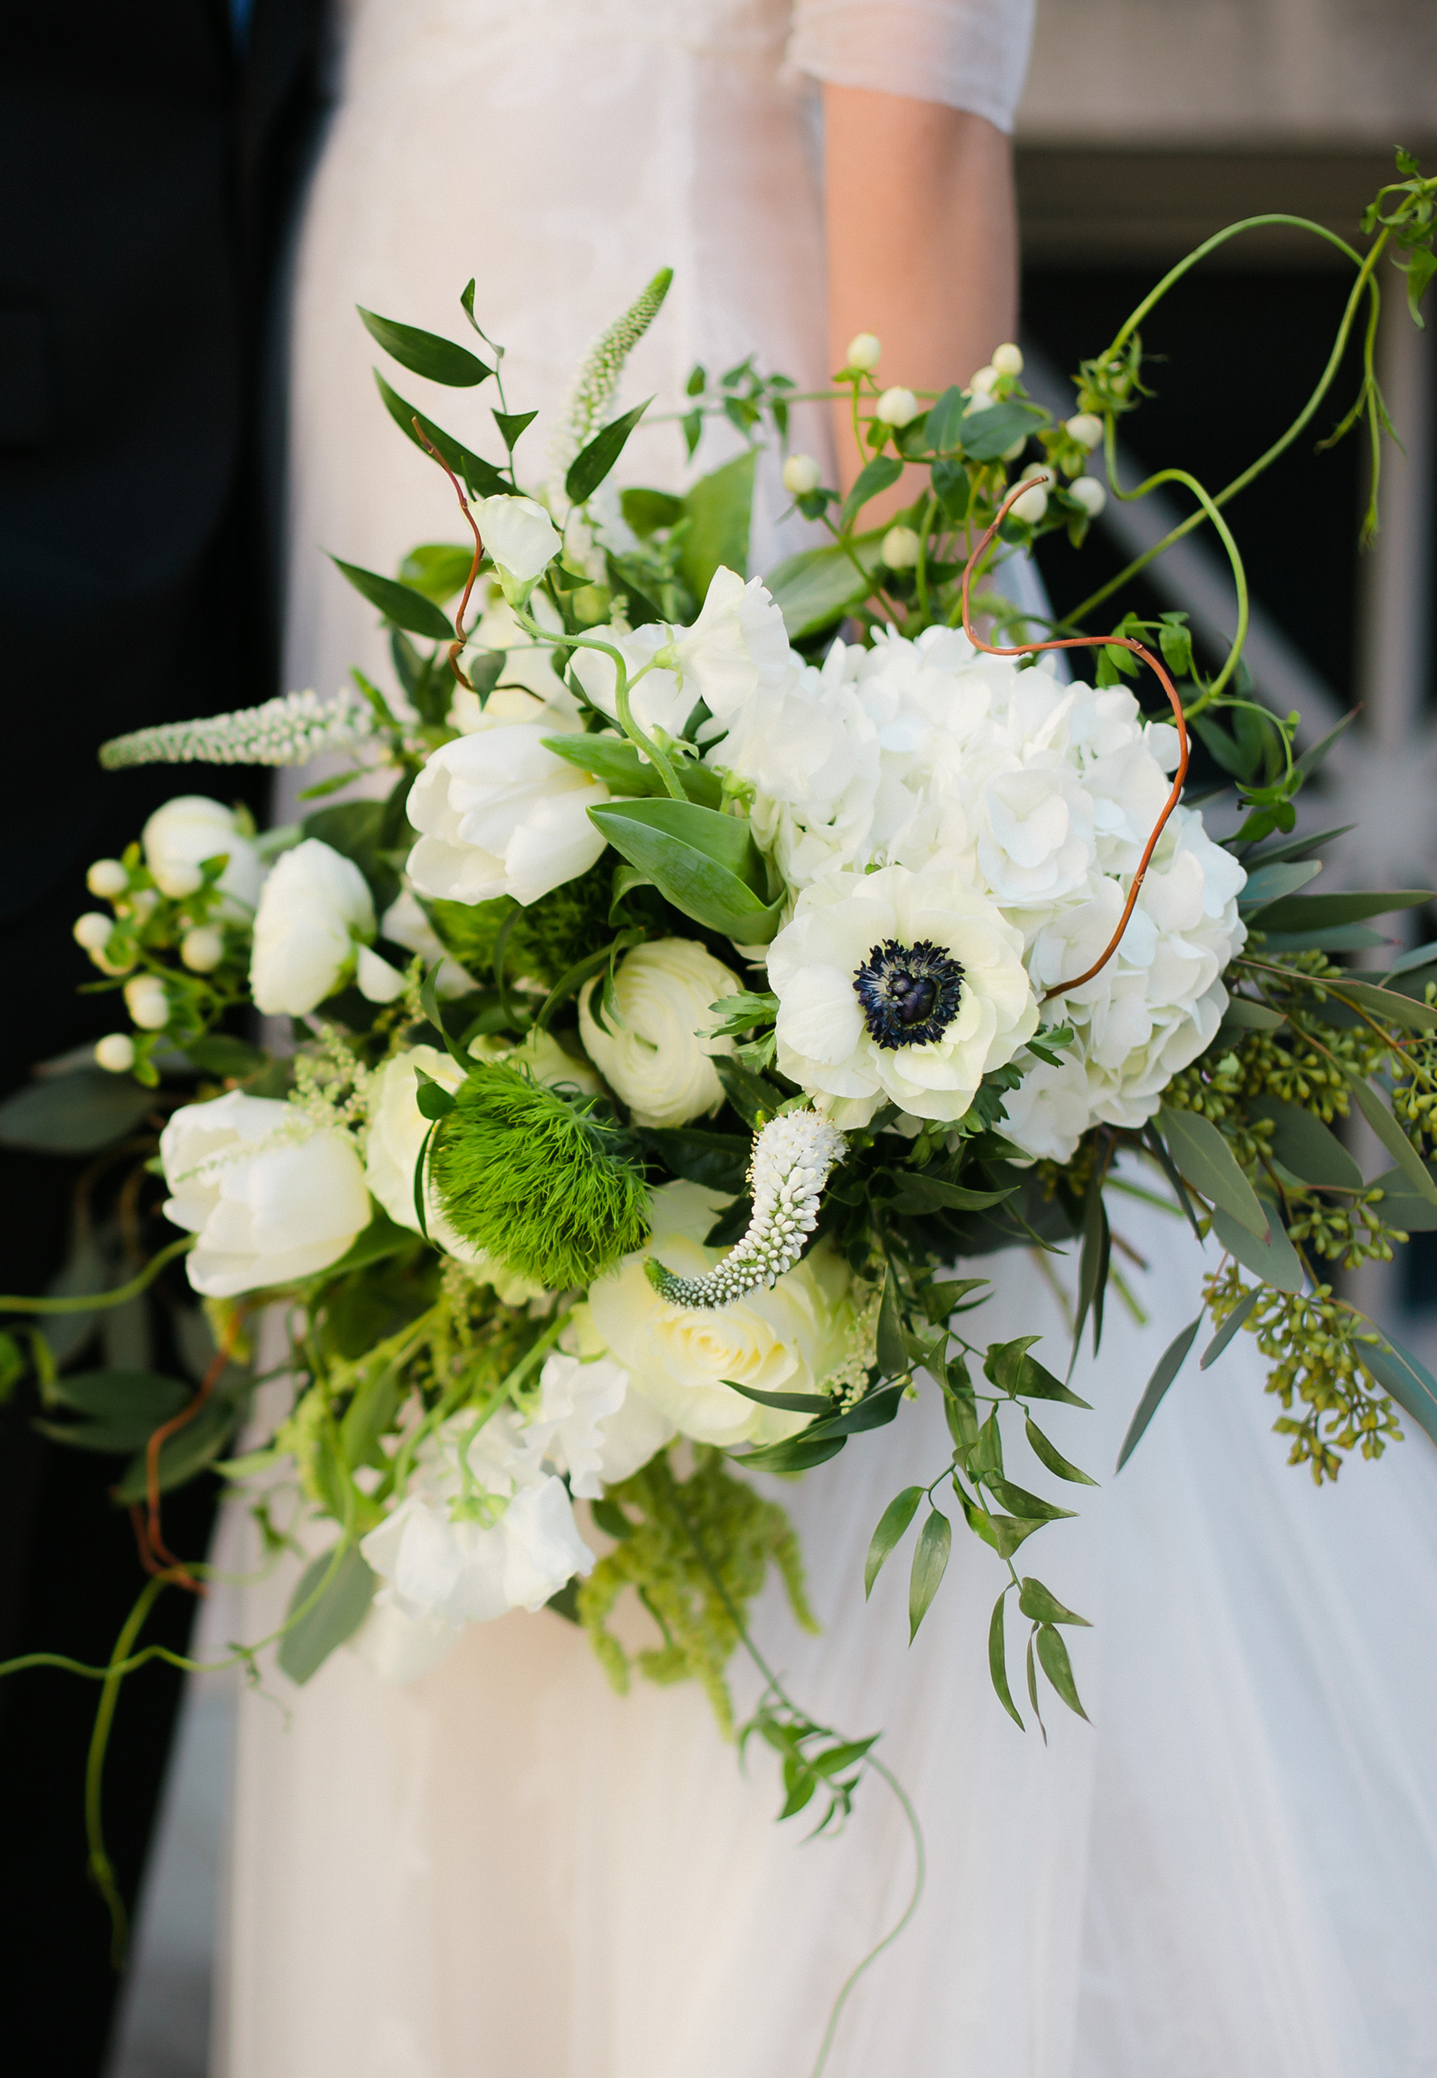 Spring bouquet in a natural organic shape with white tulips, anemones, lush foliage, and berries.